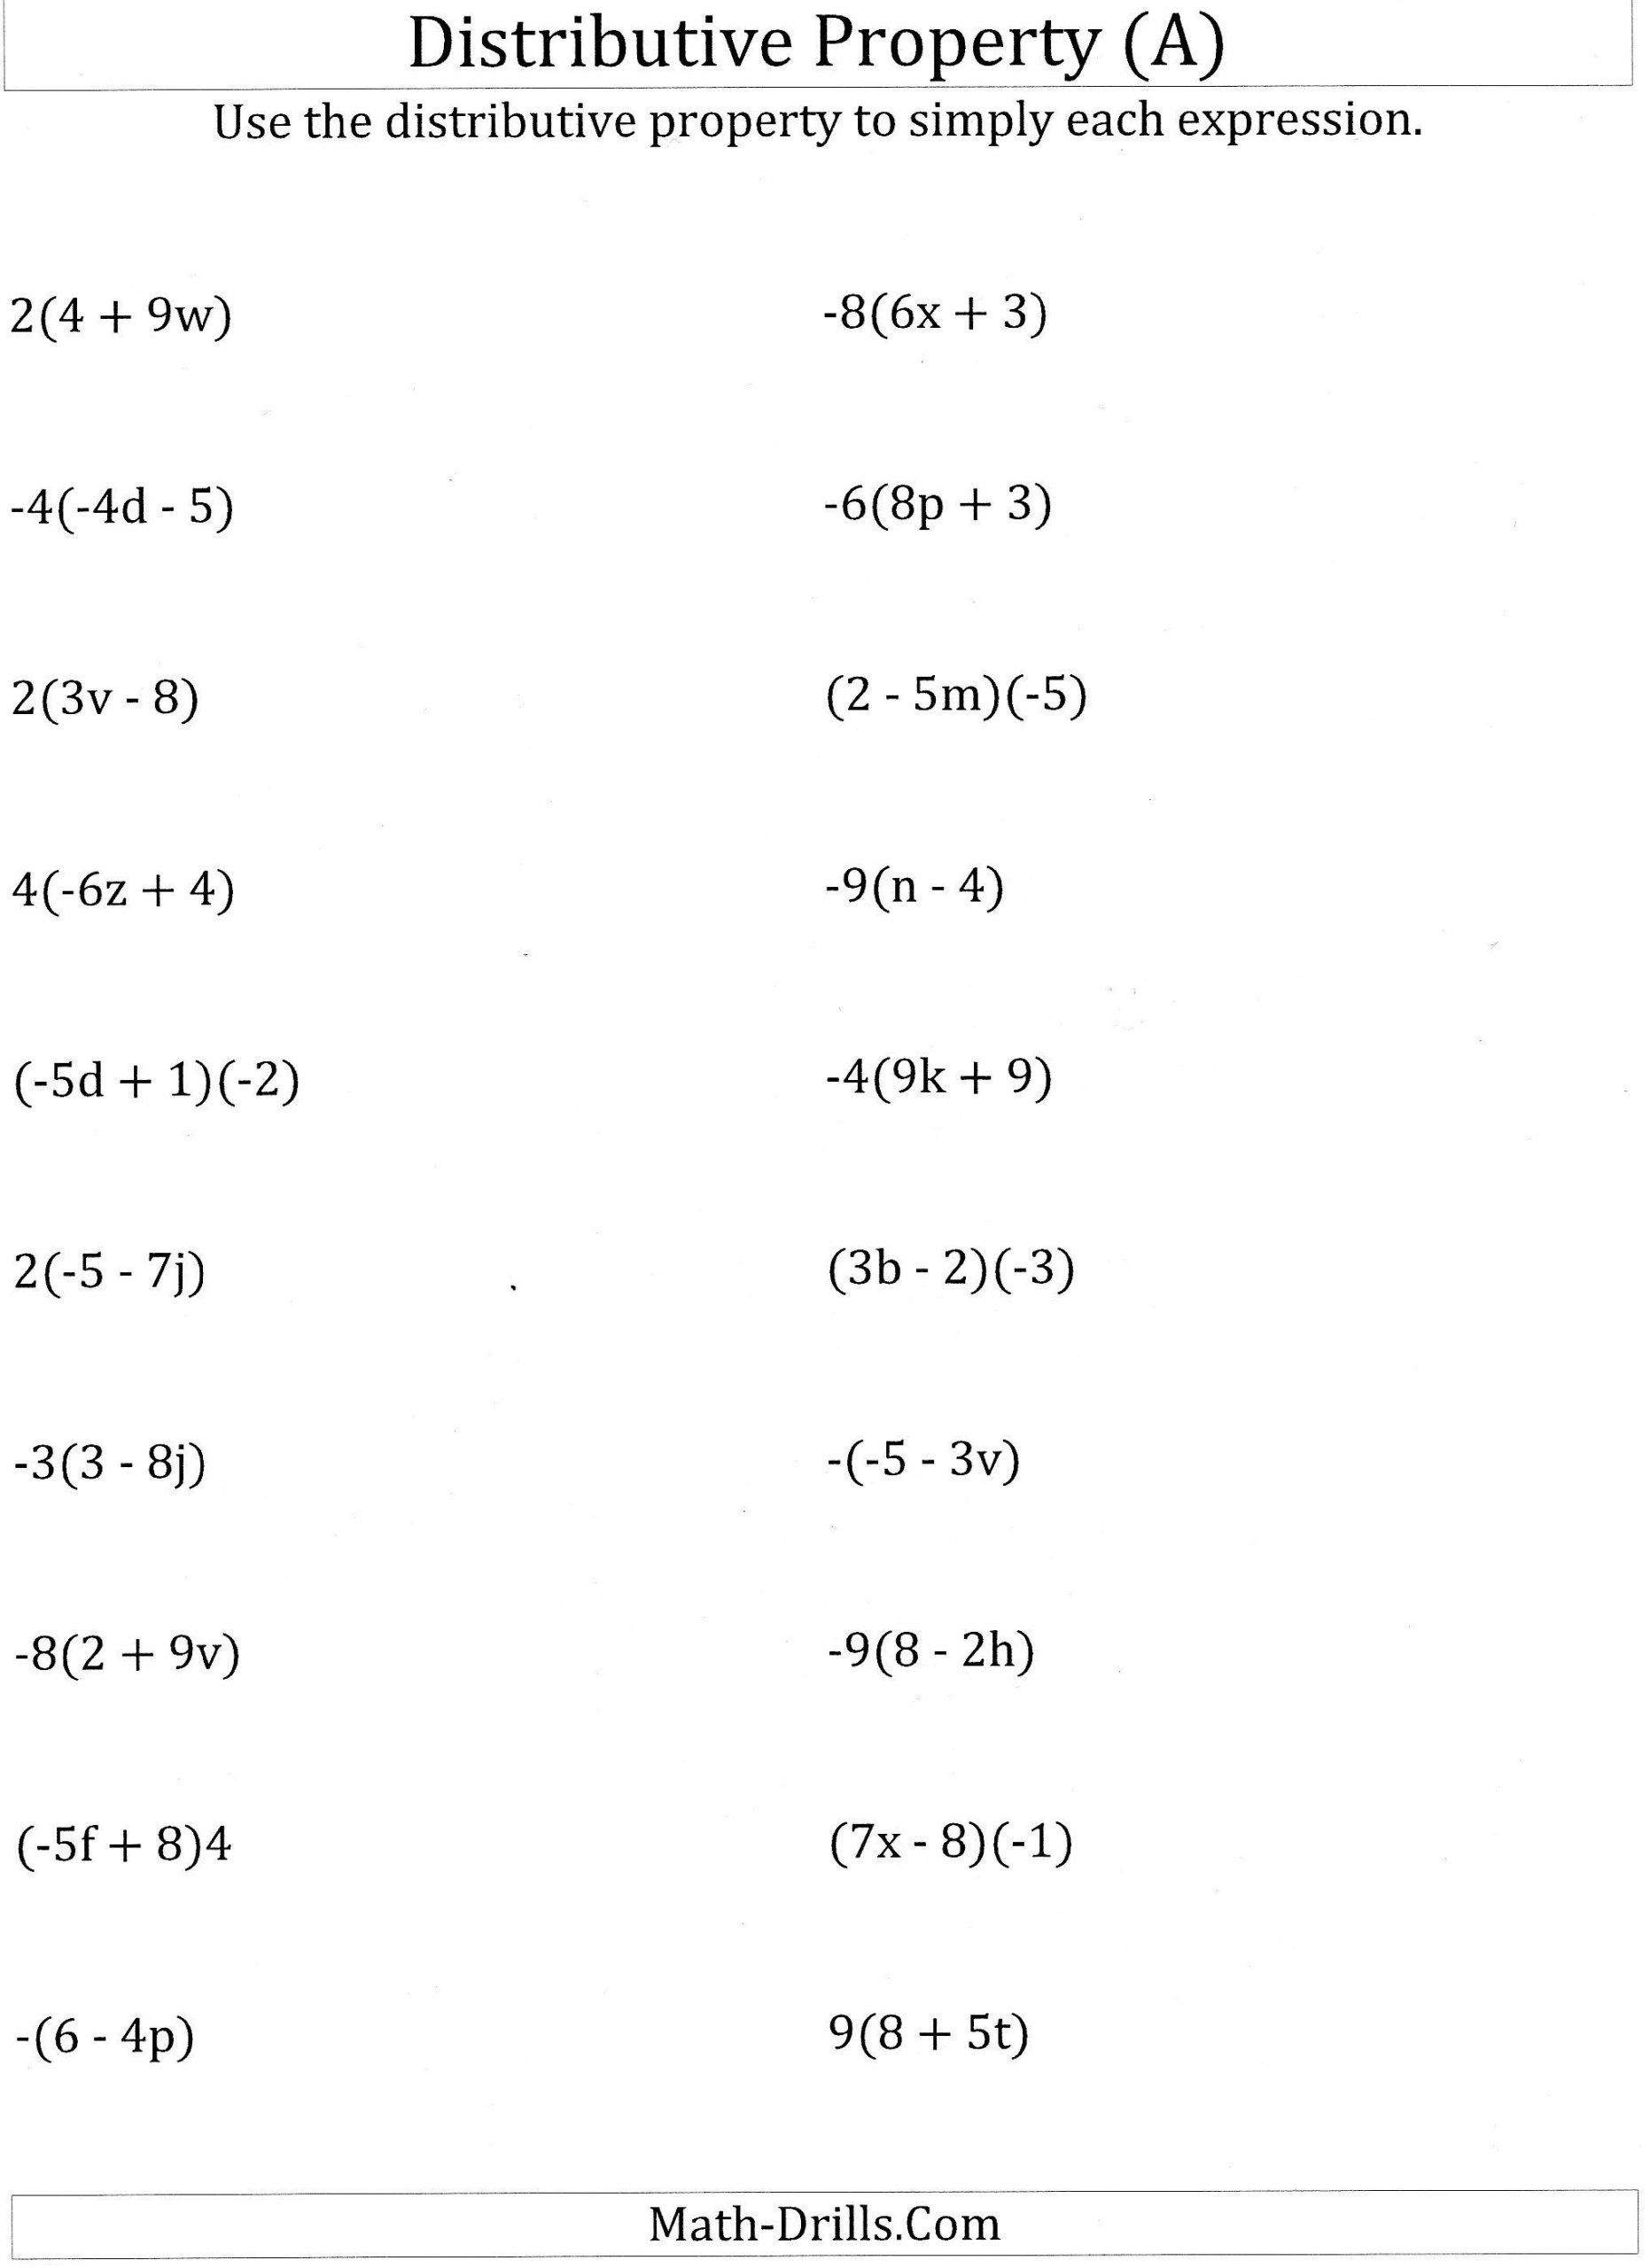 Distributive Property With Variables Worksheet Worksheet Math Worksheets Distributive Property Distributive Property Algebra Worksheets Math Worksheets [ 2560 x 1862 Pixel ]